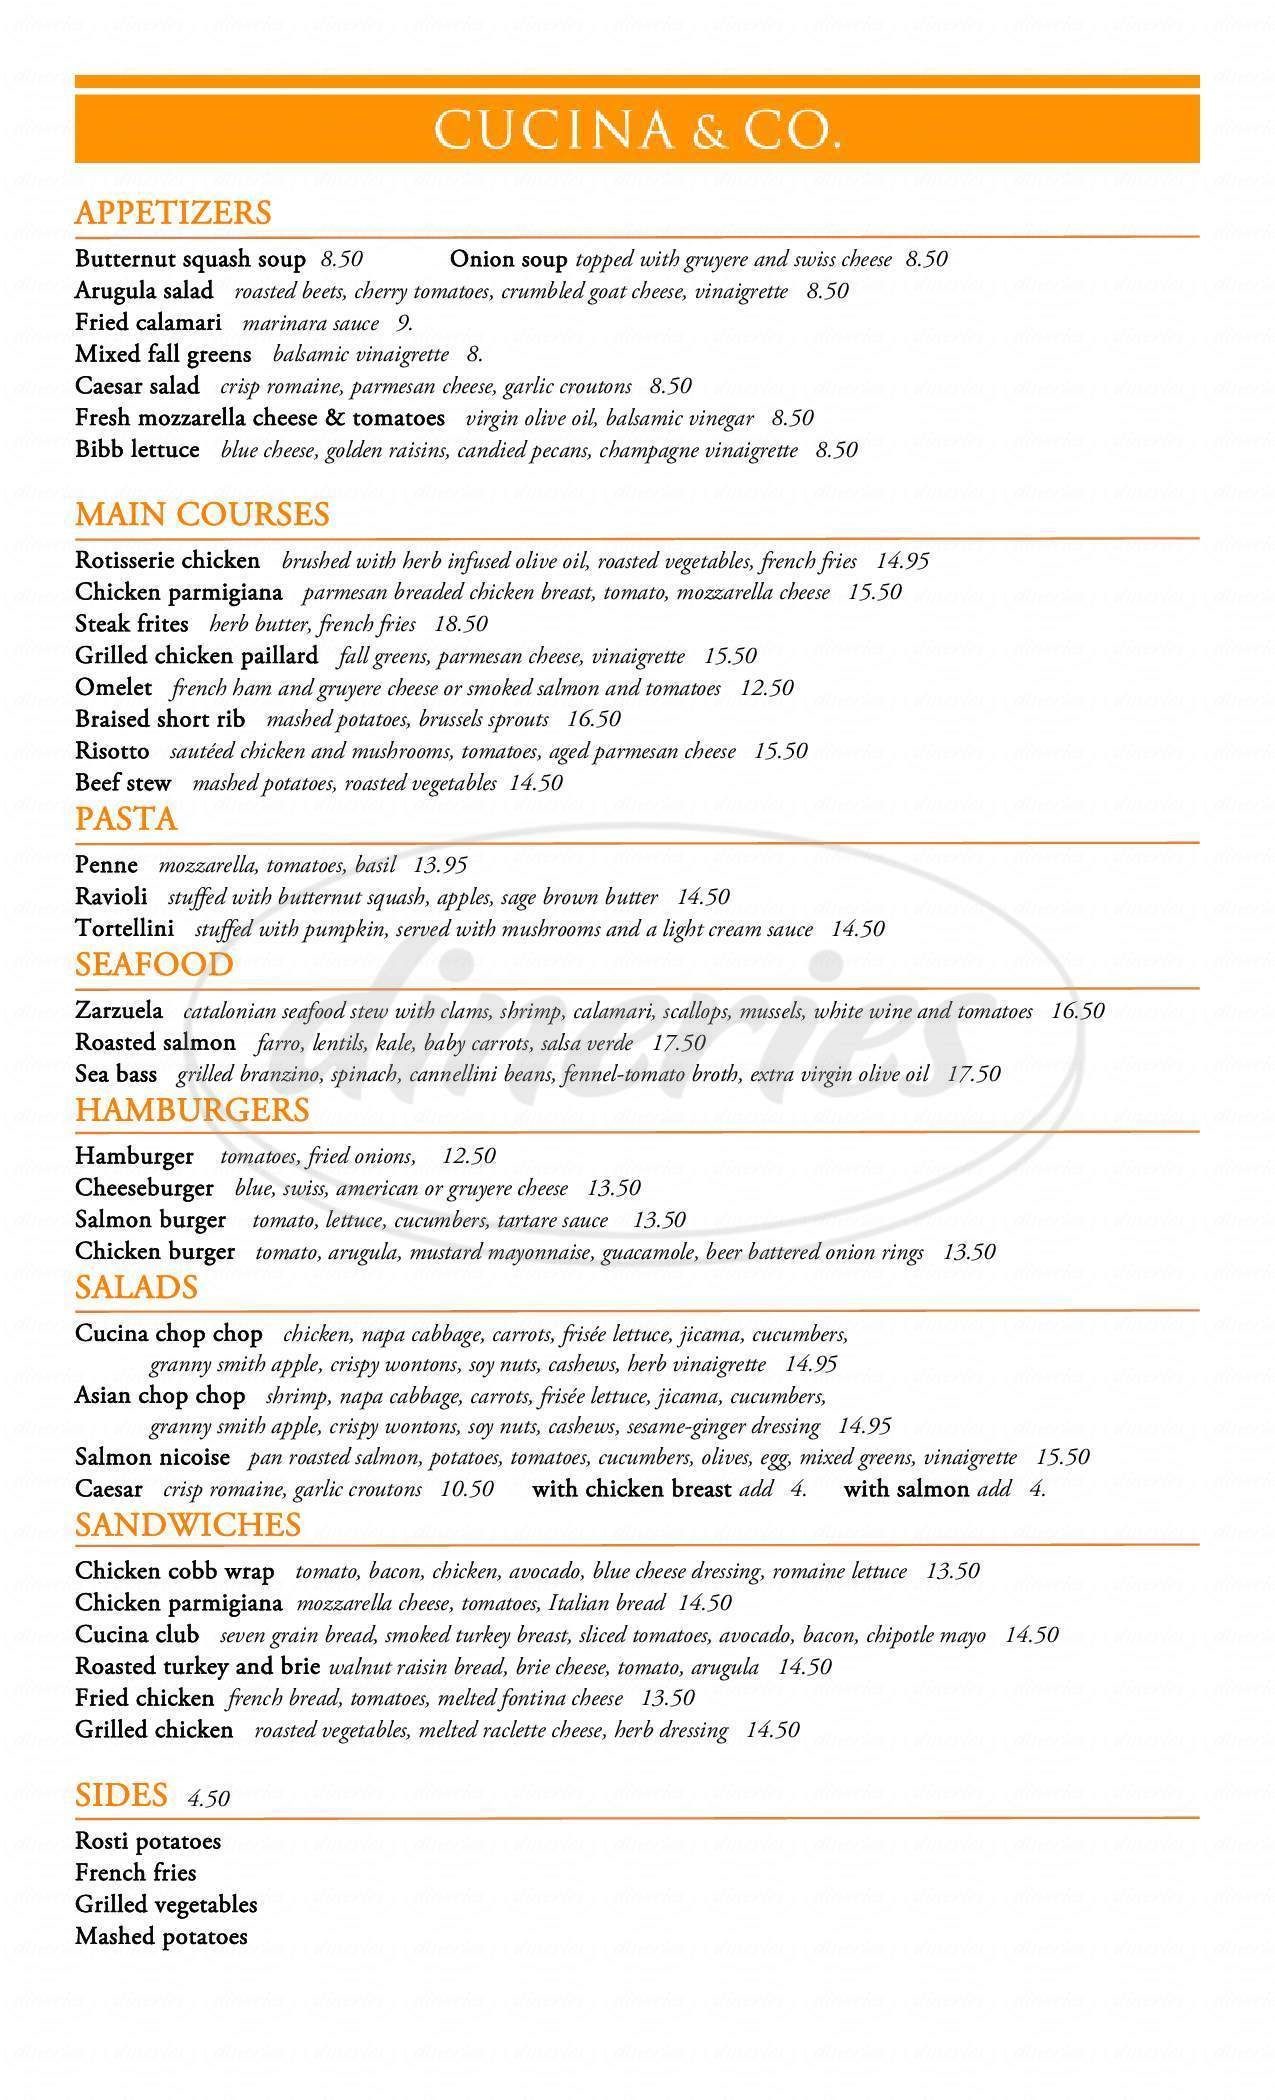 Cucina And Co Menu Cucina Company At Metlife Bldg Menu New York Dineries